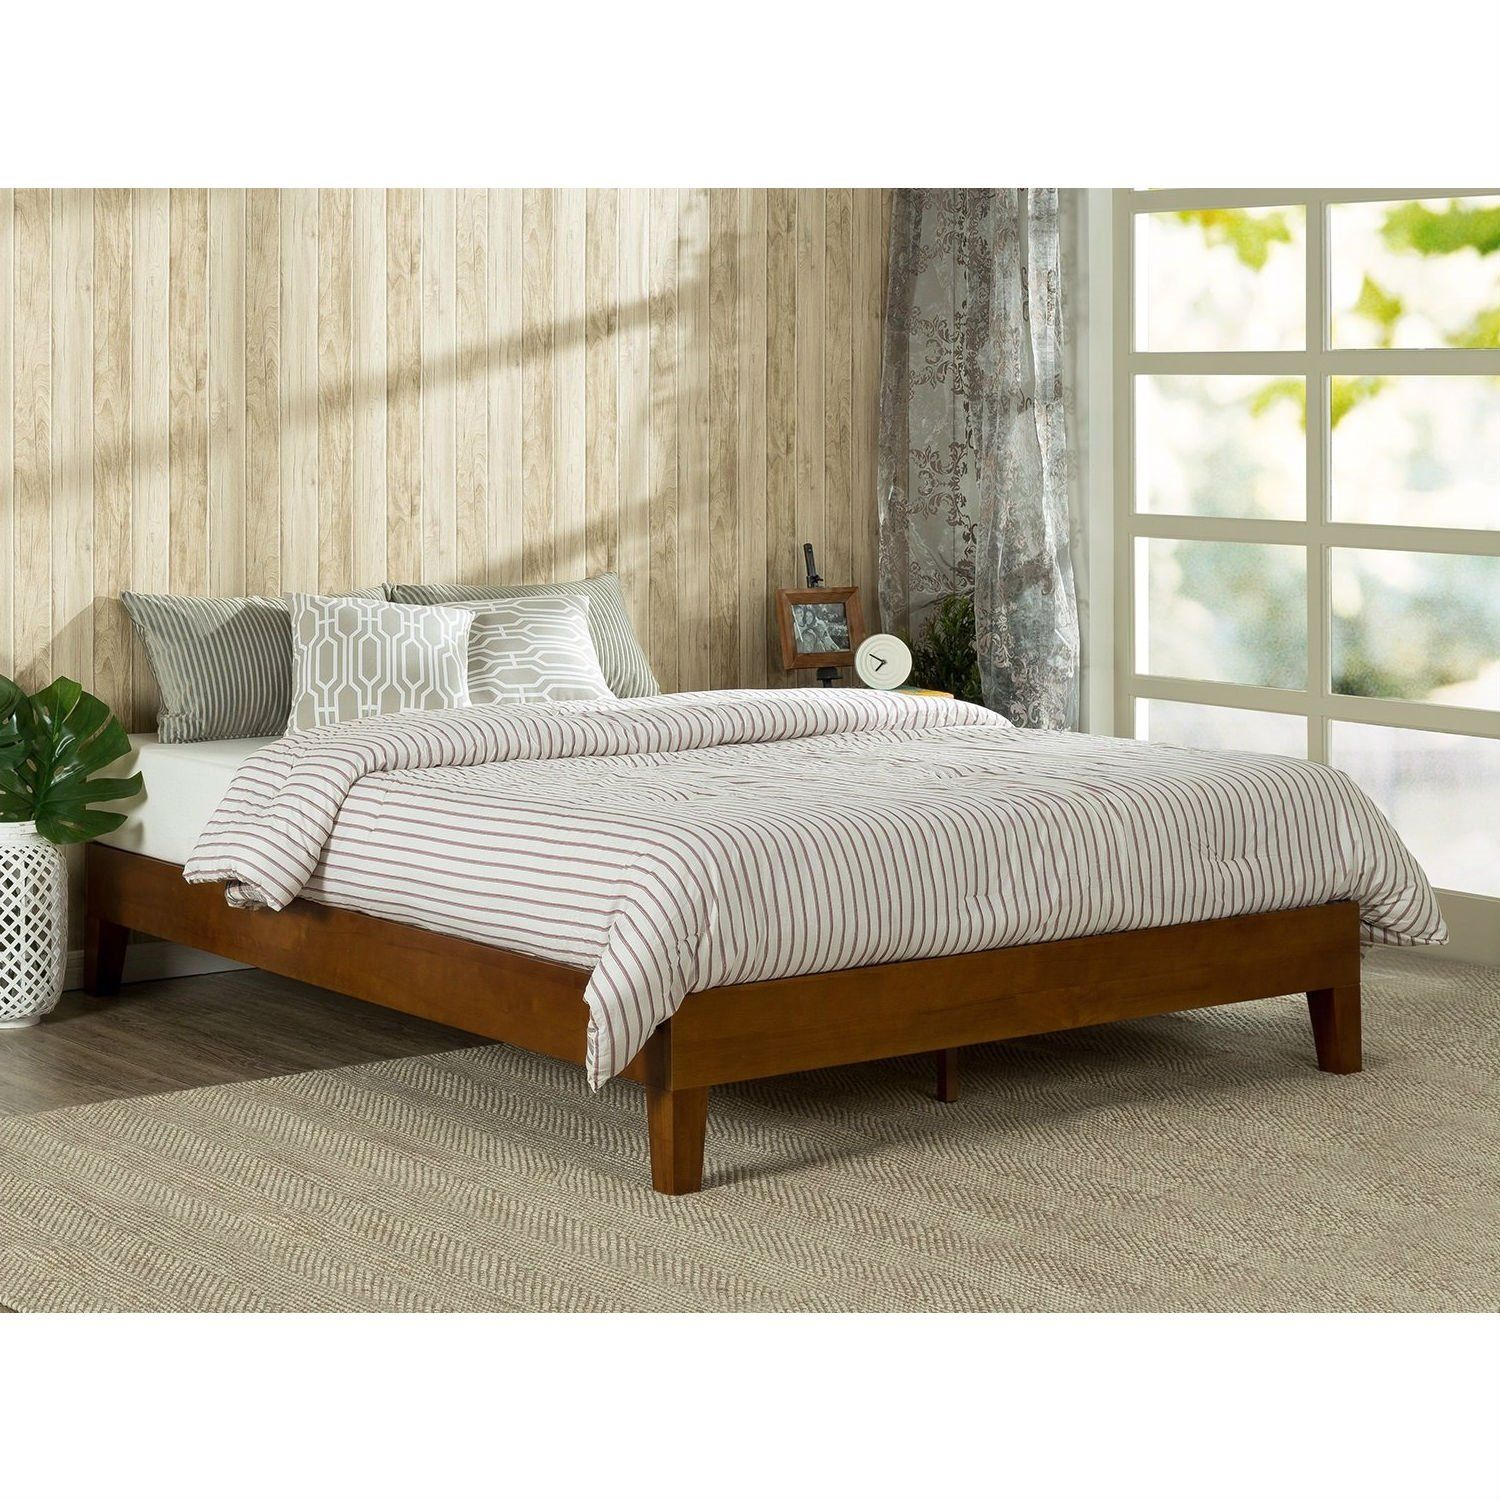 Full size Low Profile Platform Bed Frame in Cherry Wood